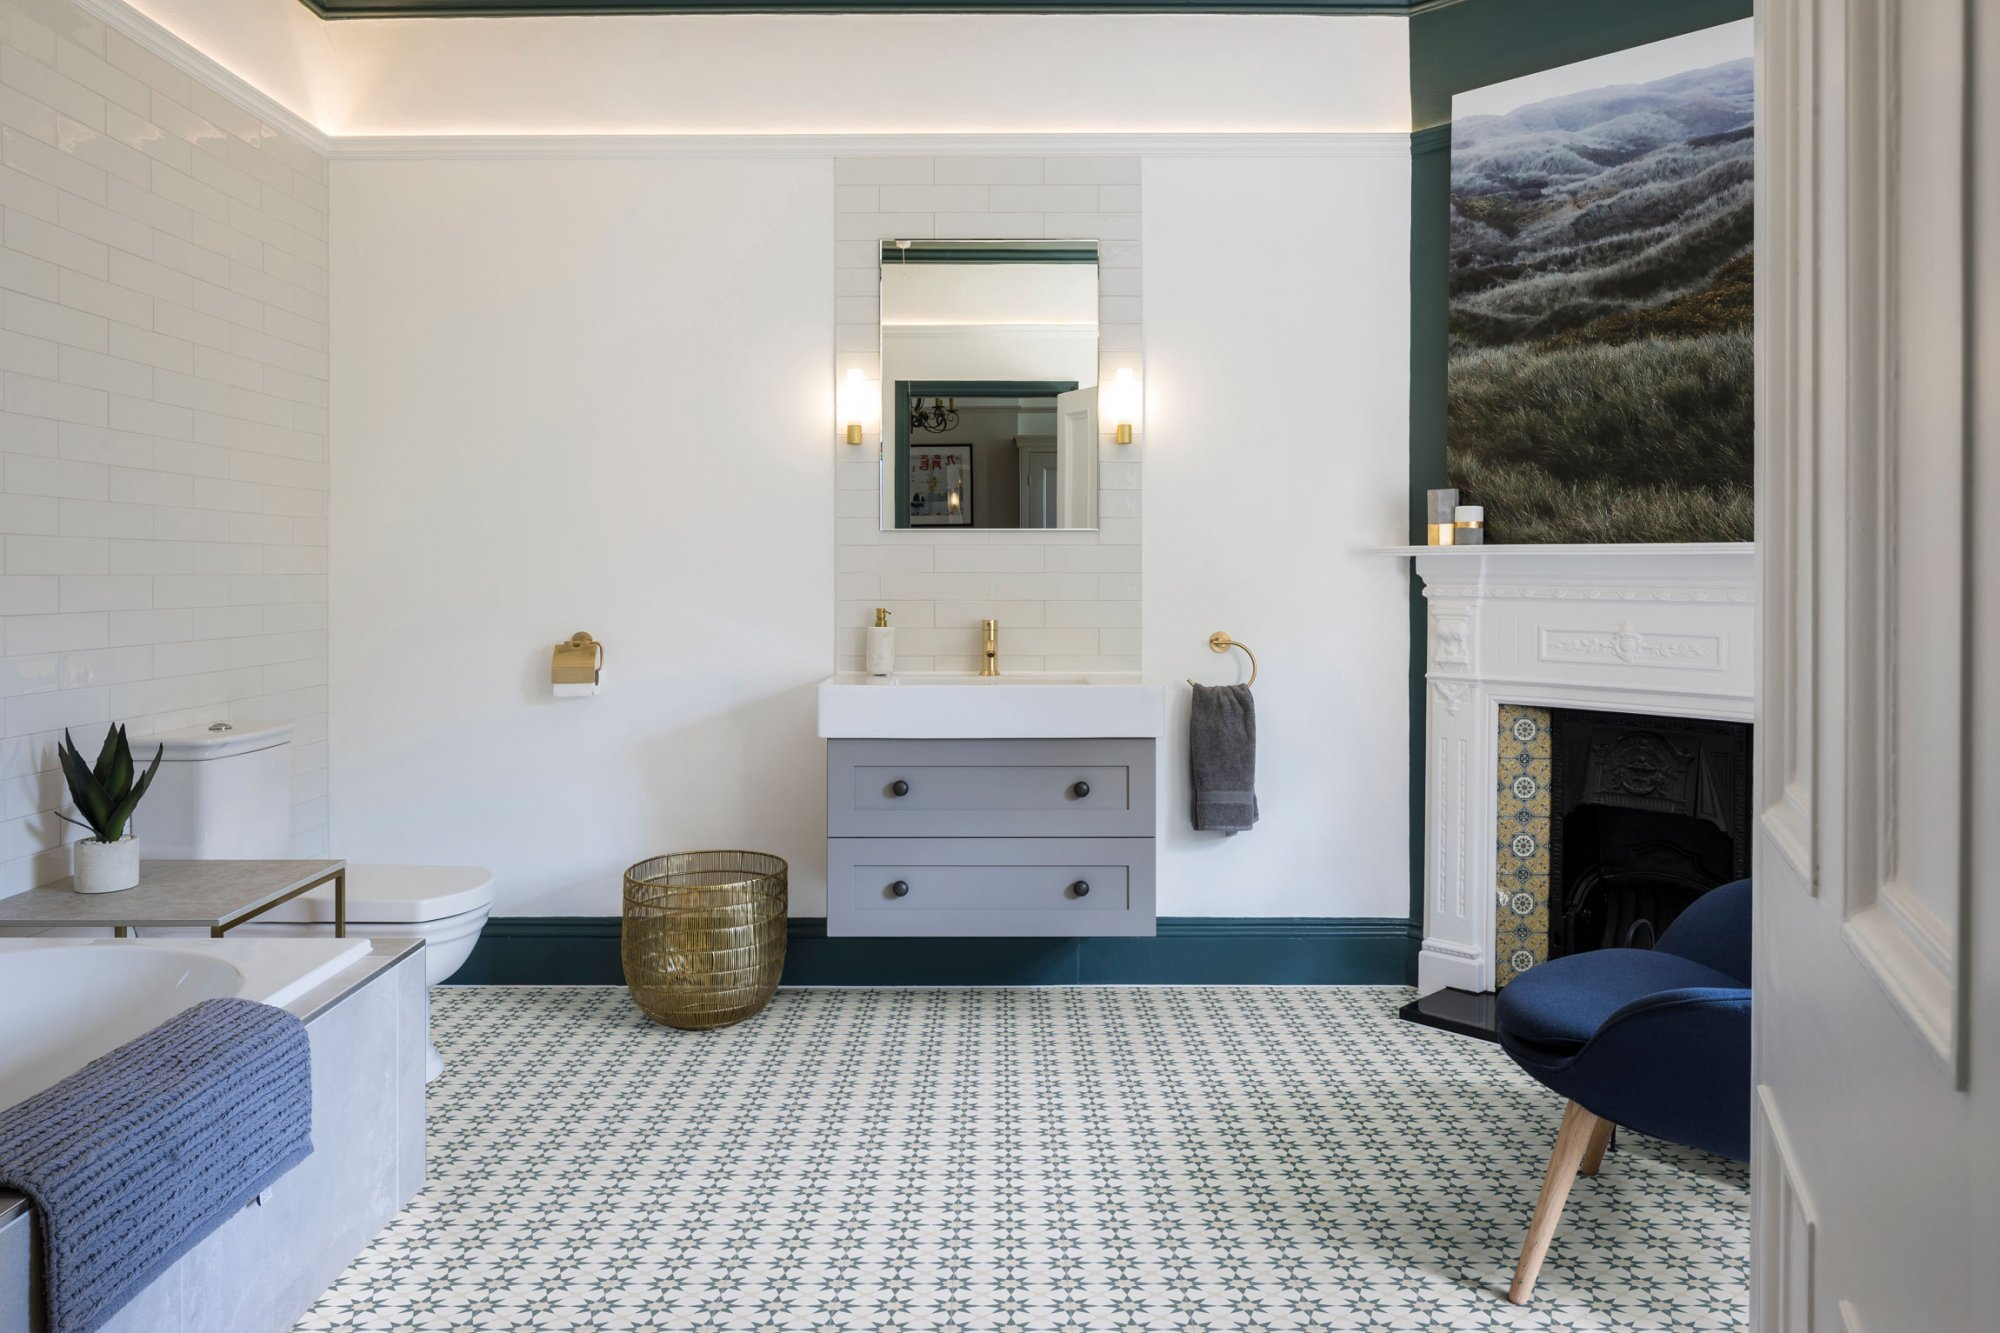 Magnificent Atlas Denim Wall And Floor Coverings Tiles West One Download Free Architecture Designs Rallybritishbridgeorg